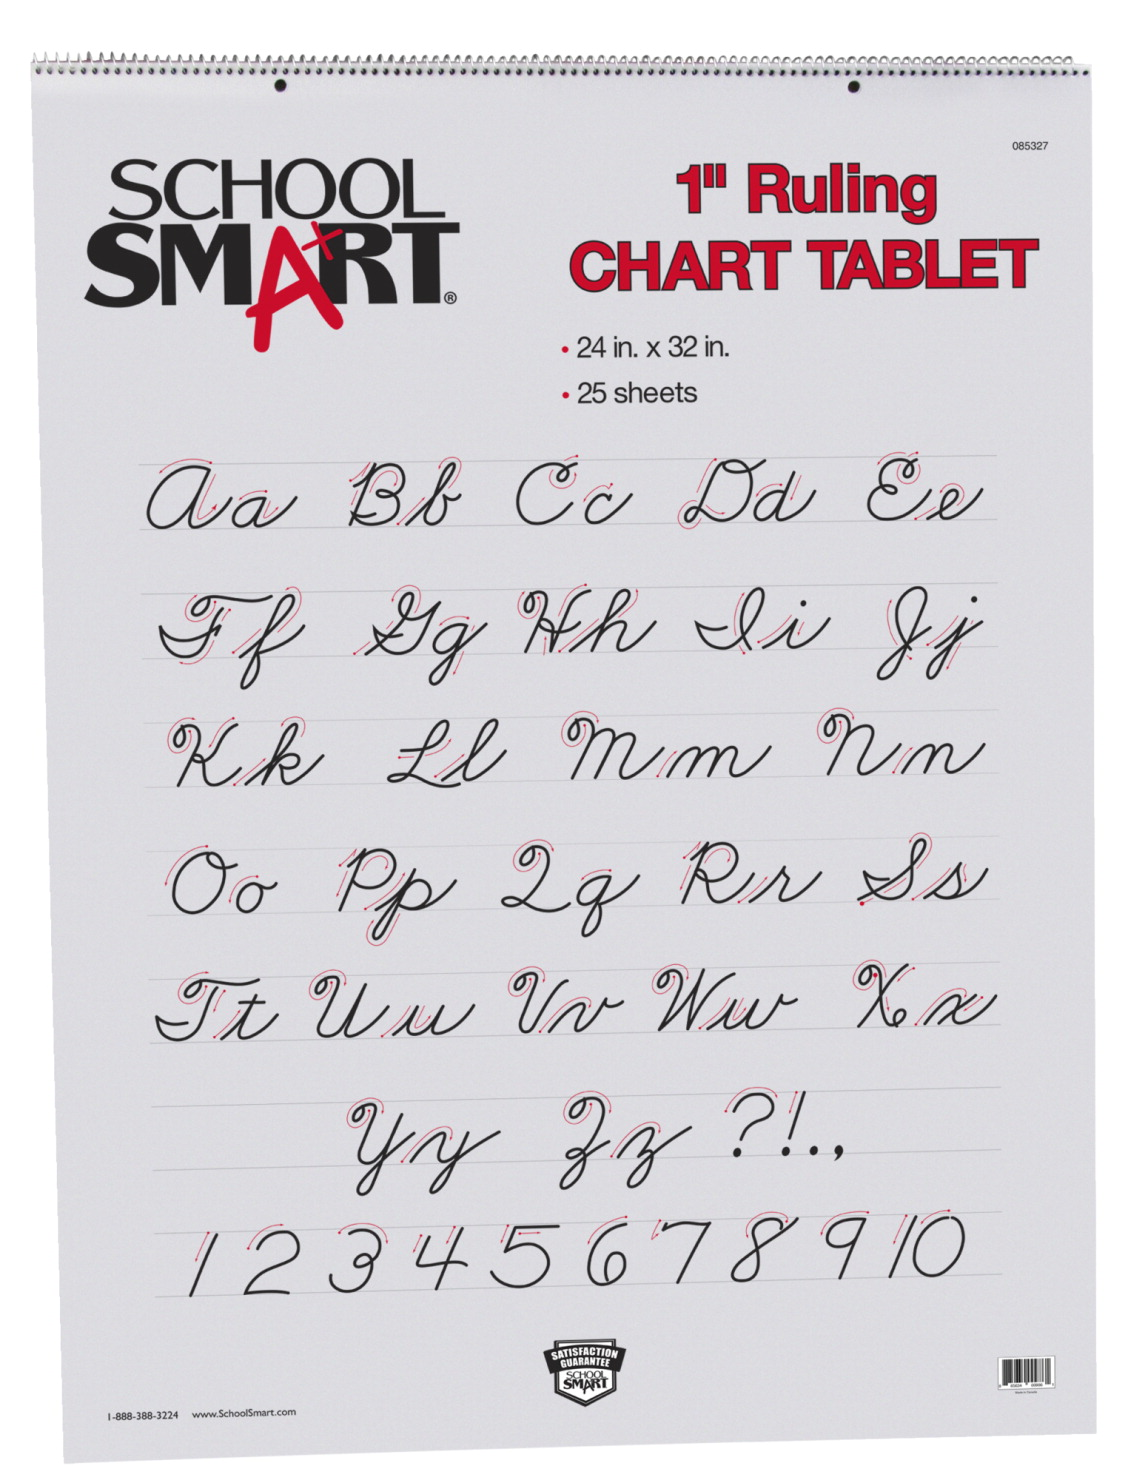 School Smart Chart Paper Pad, 24 x 32 Inches, 1 Inch Rule, 25 Sheets